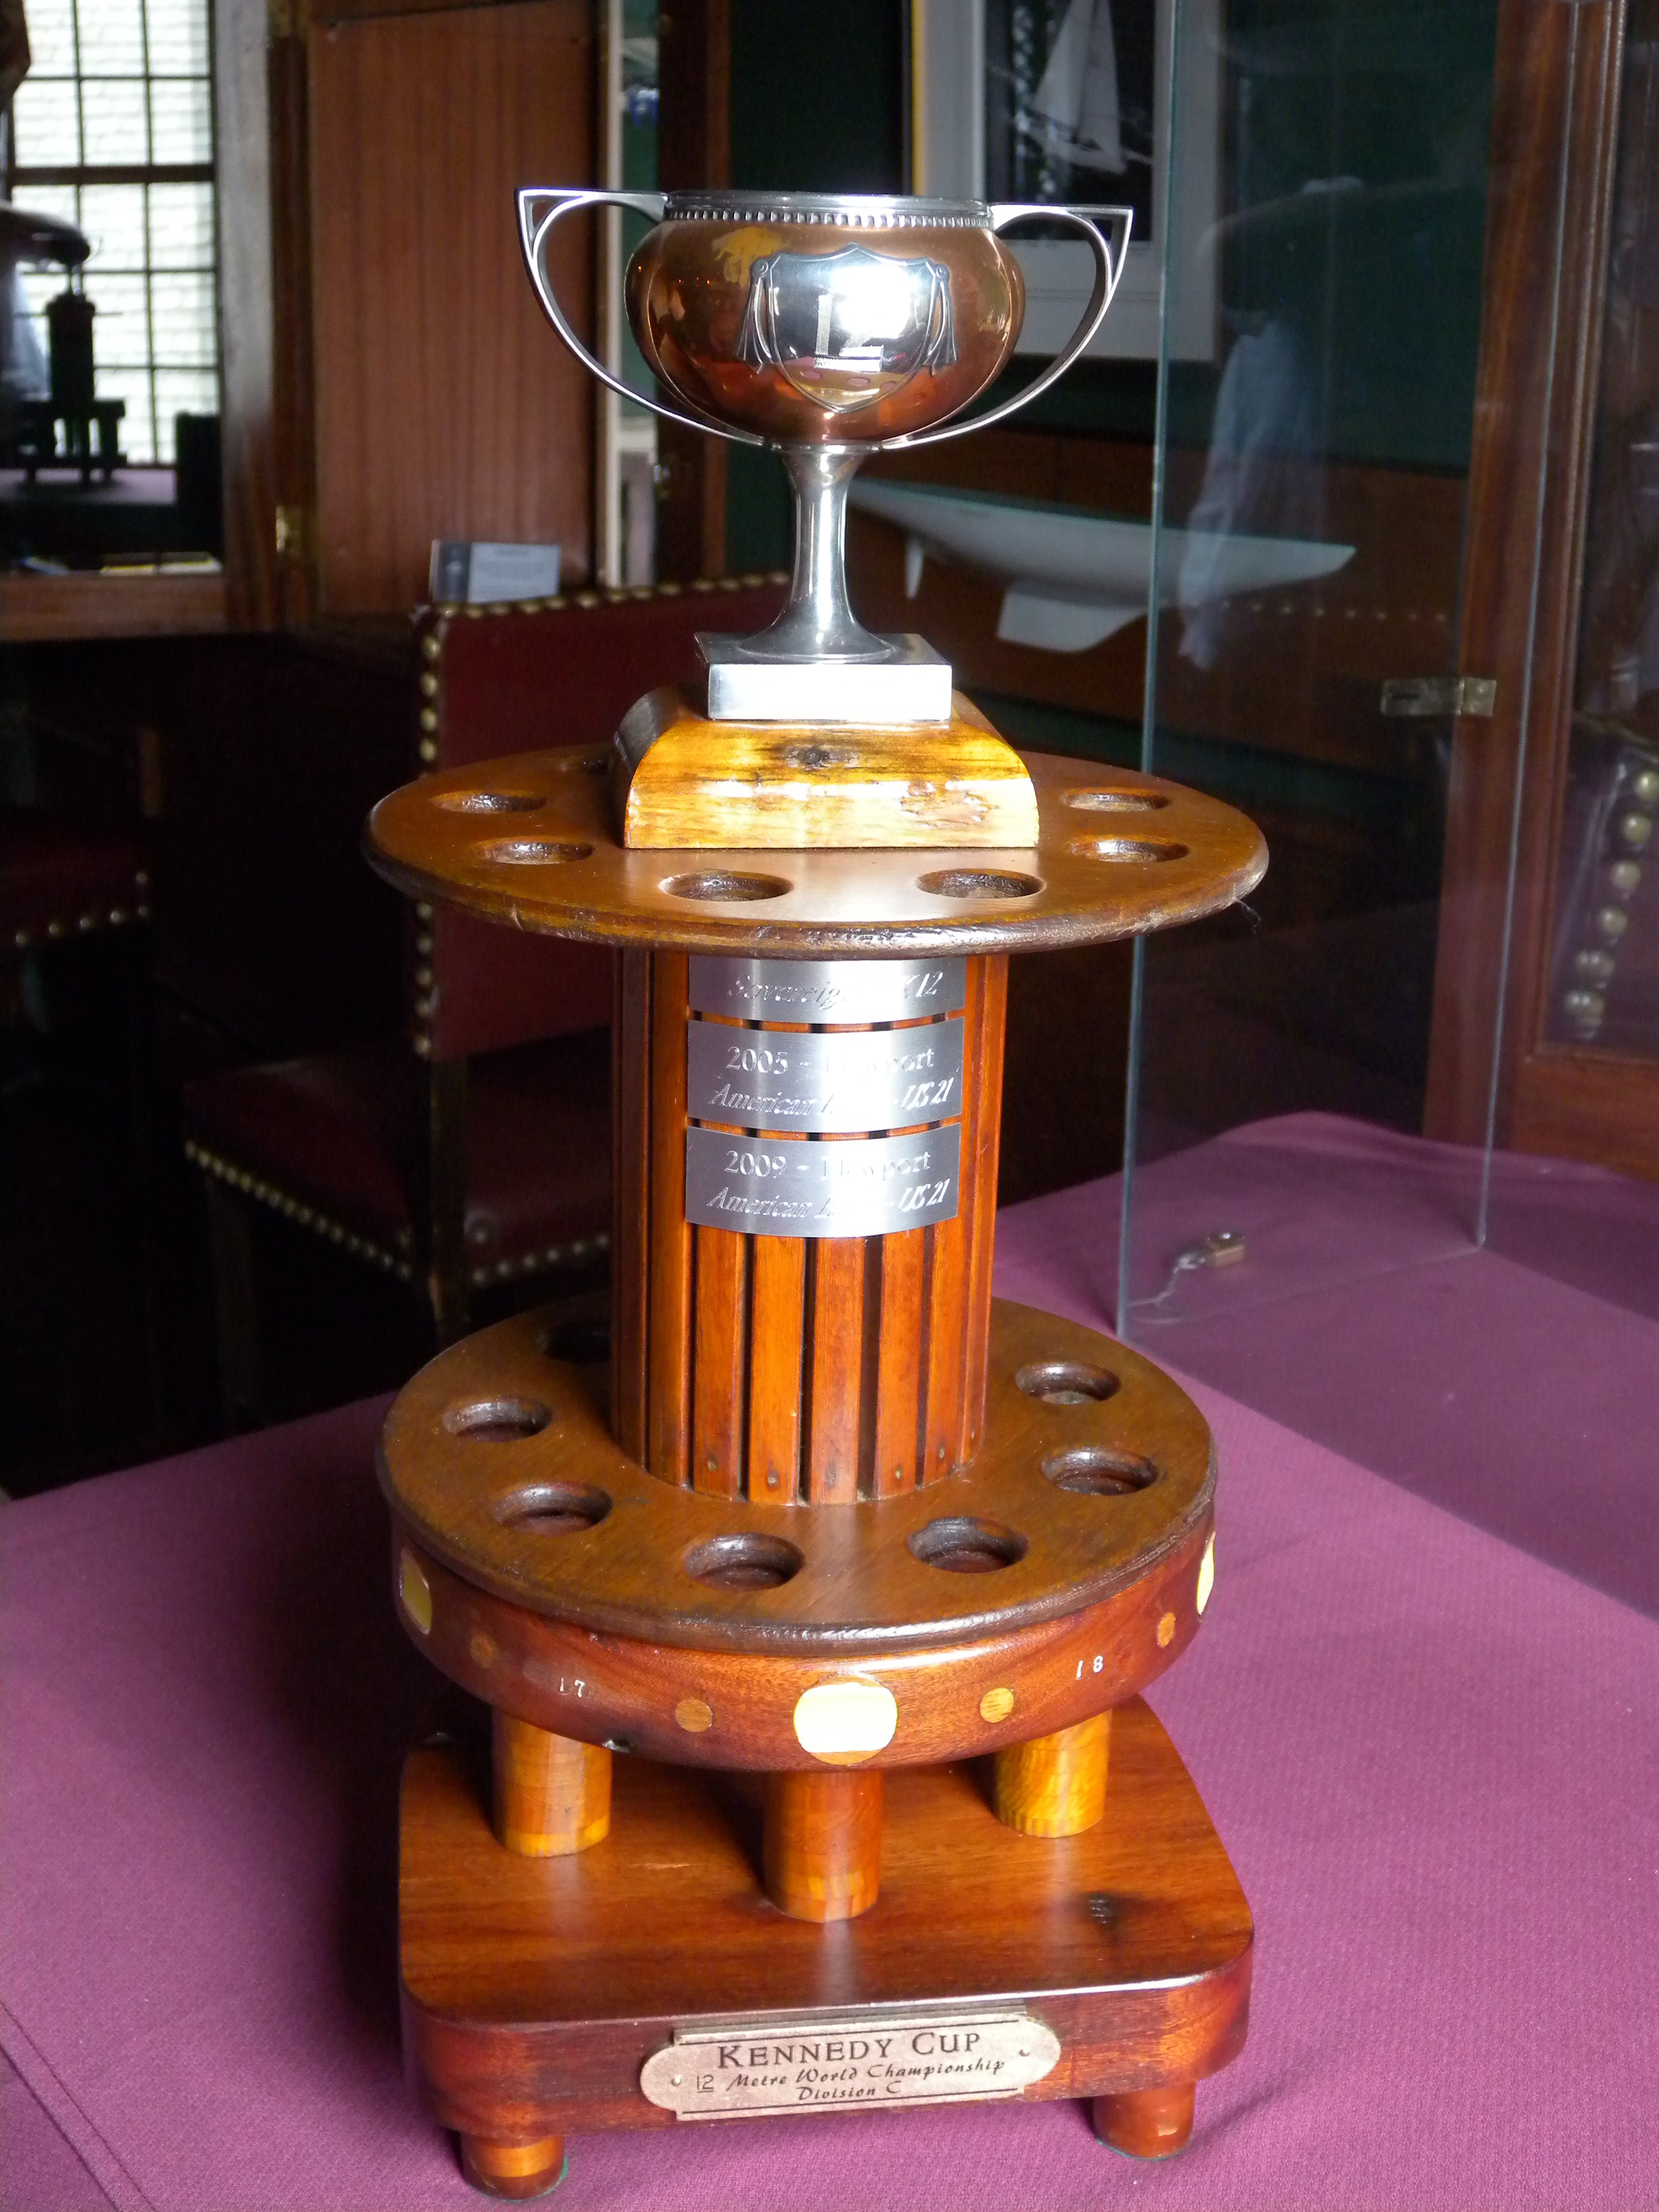 Kennedy Cup, 12 Metre World Championship Trophy